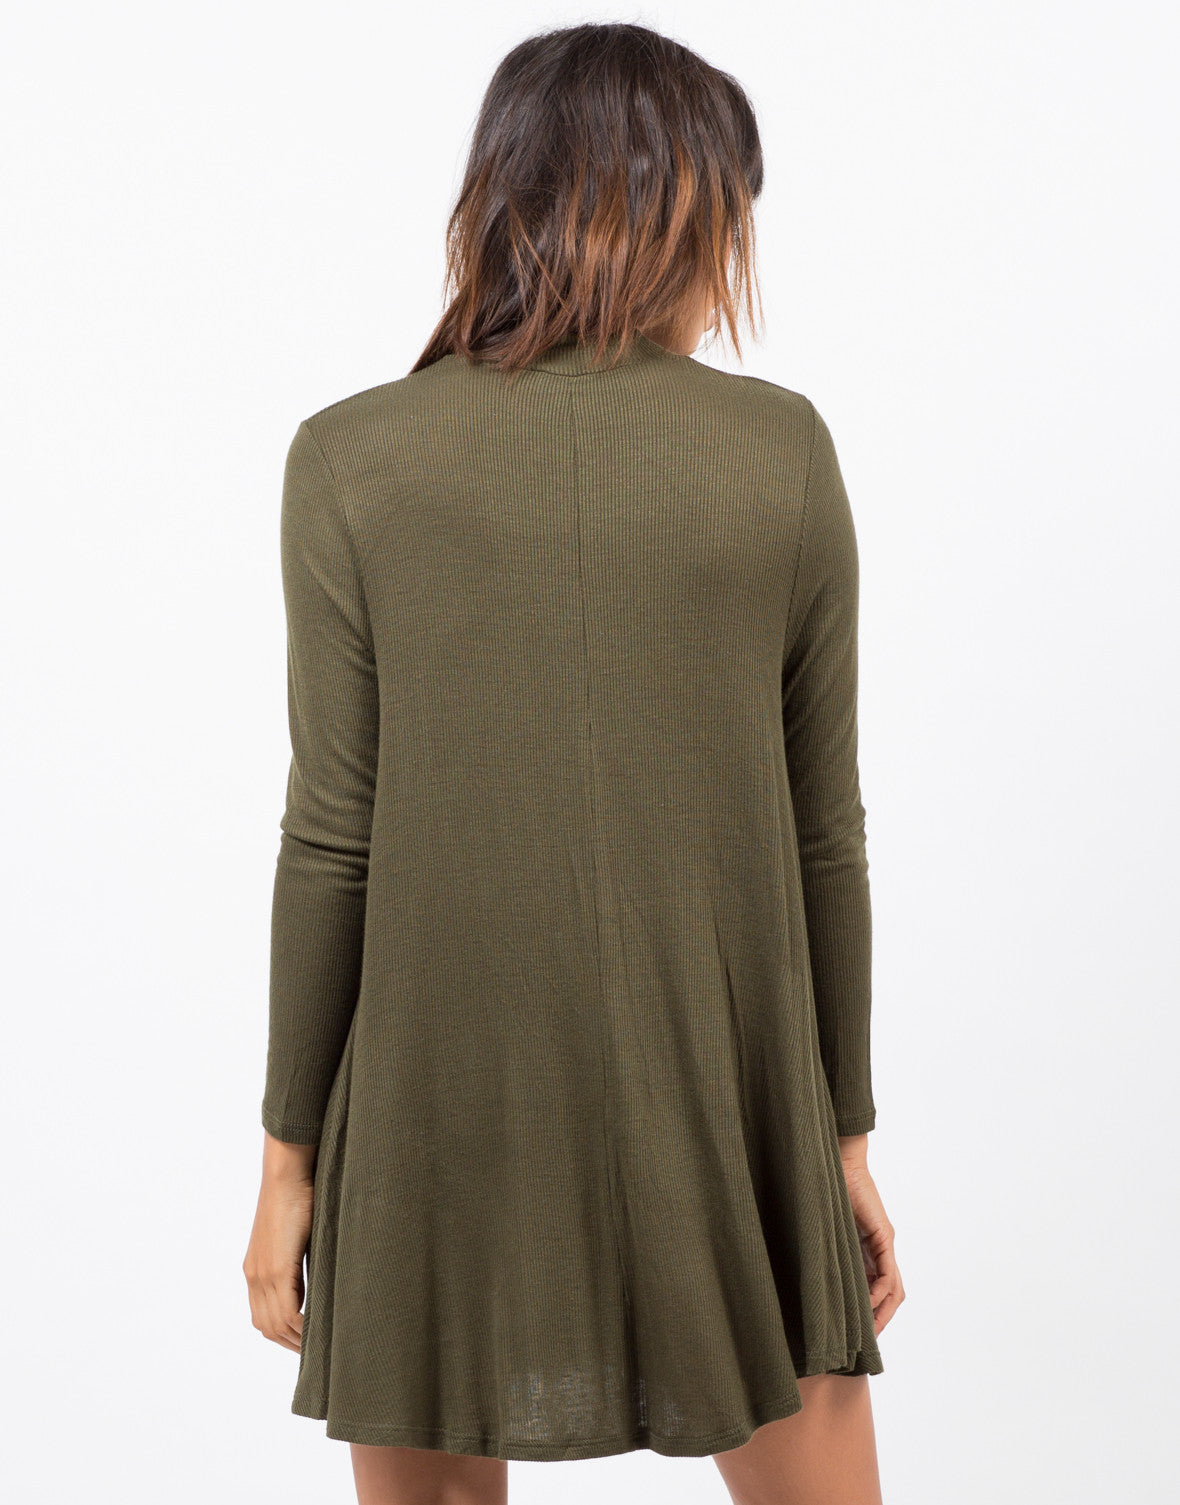 Back View of Back View of Ribbed Mock Neck Dress